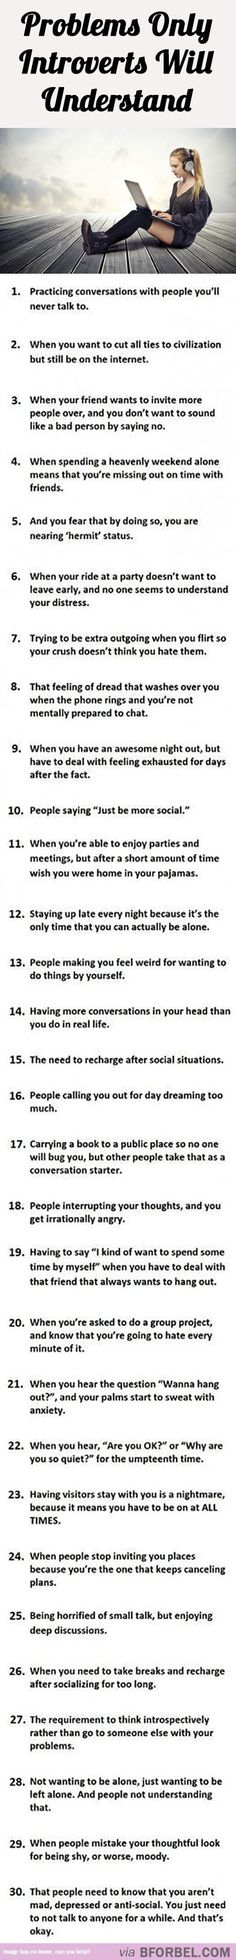 30 Problems Only Introverts Will Understand.